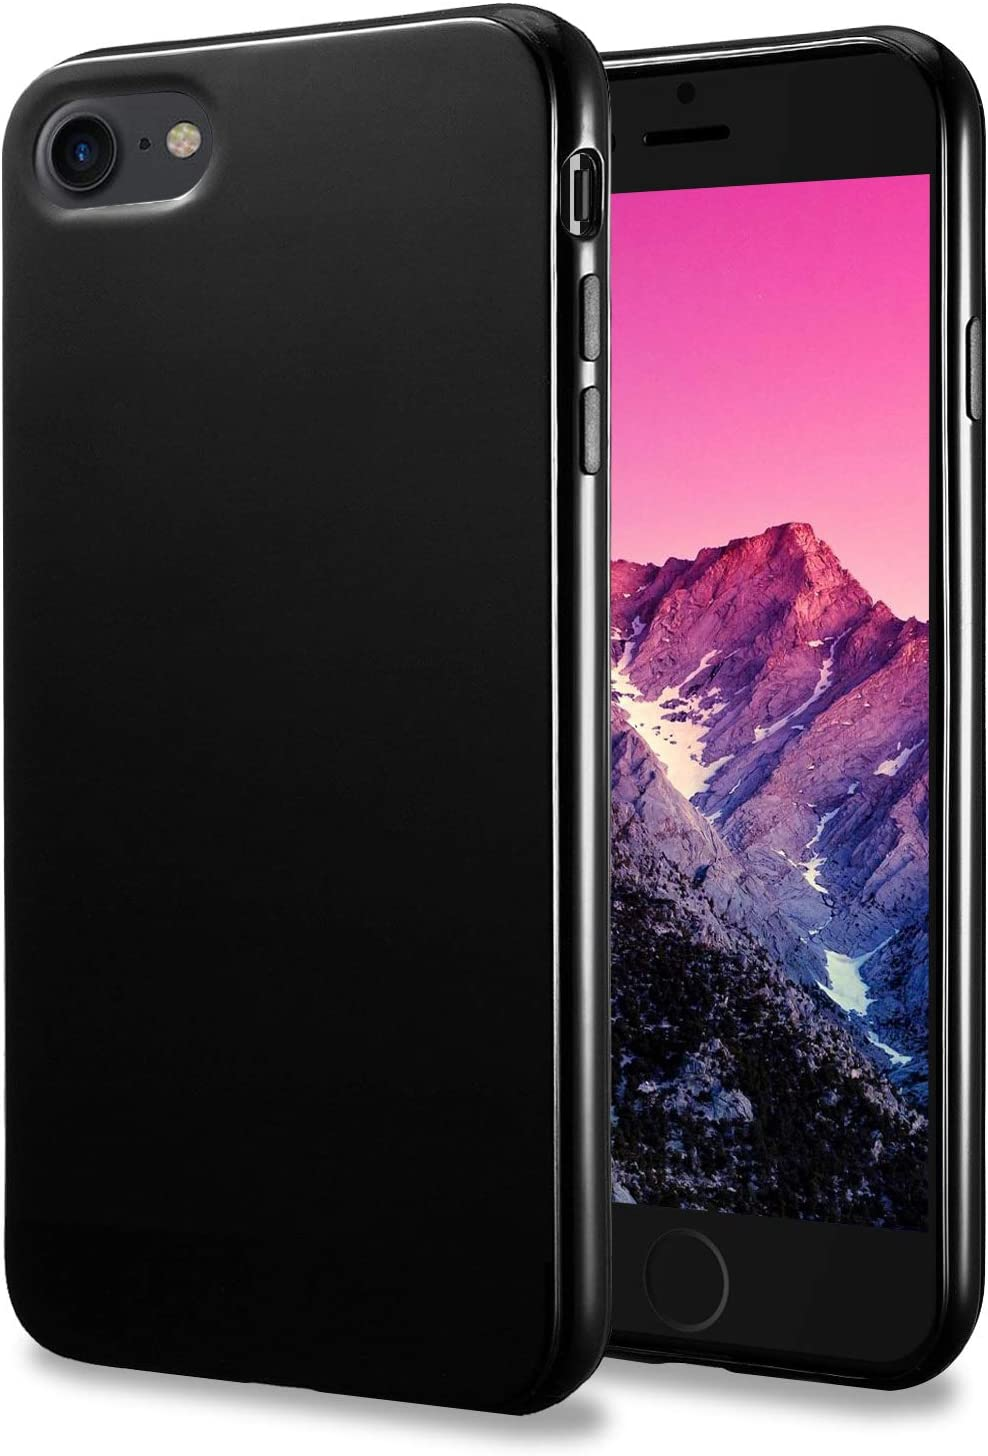 TENOC Phone Case Compatible for New Apple iPhone SE (2nd Generation) 2020 / iPhone 8 / iPhone 7 4.7 Inch, Slim Fit Cases Soft TPU Bumper Protective Cover, Glossy Black